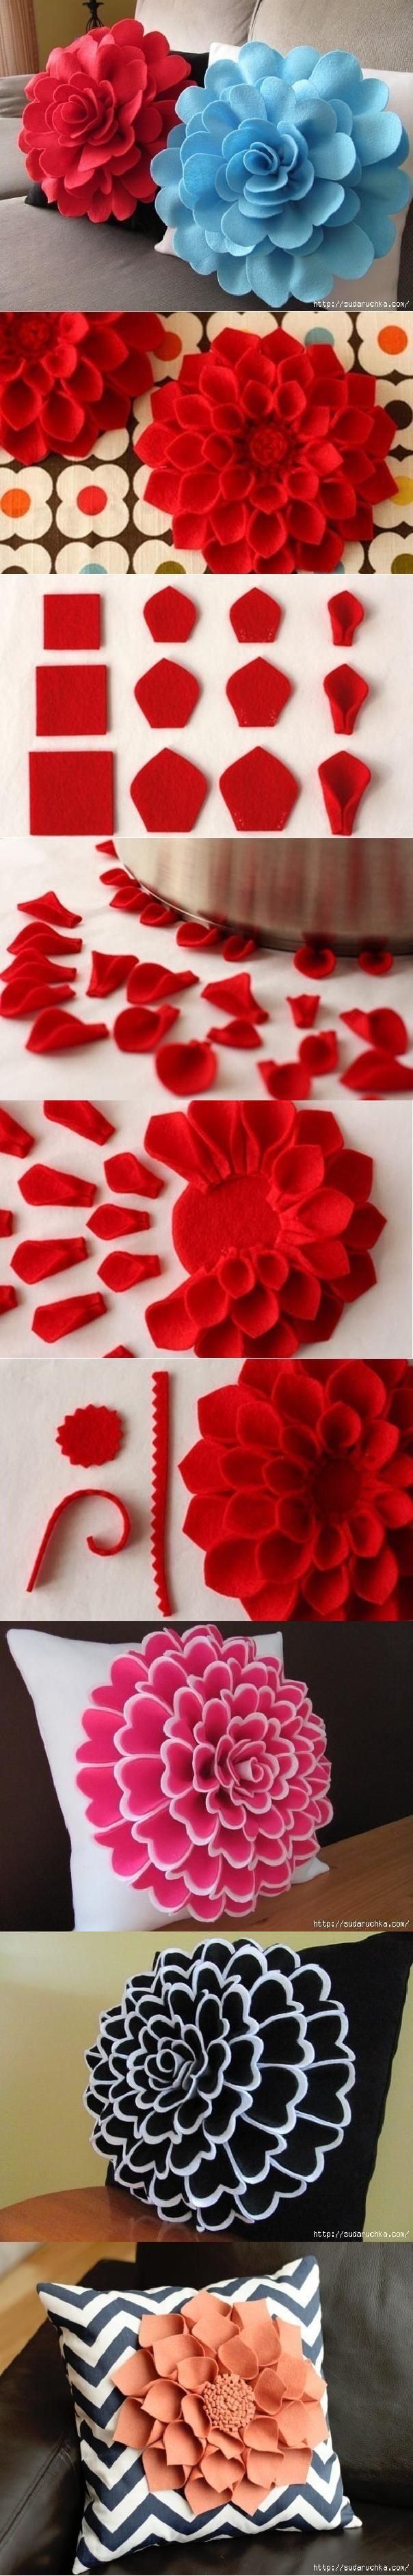 DIY Decorative Felt Flower Pillow. Decorar con dalias o flores de fieltro